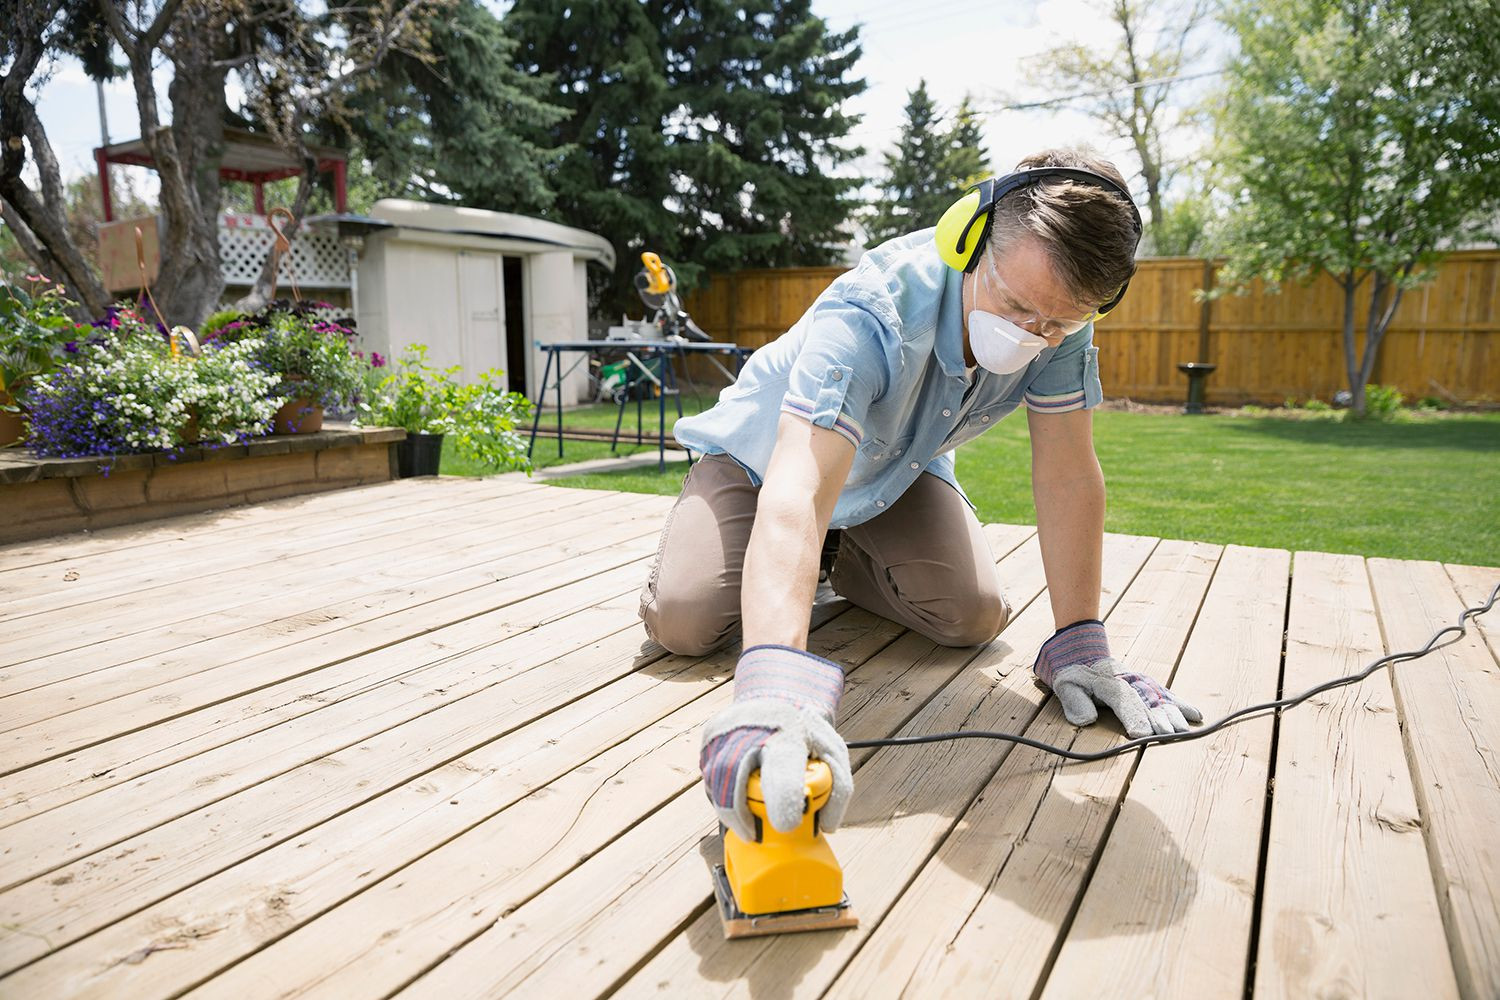 types of sanders for hardwood floors of tips for properly sanding a wood deck after washing regarding gettyimages 500817135 5a6519907bb283003730b5bb